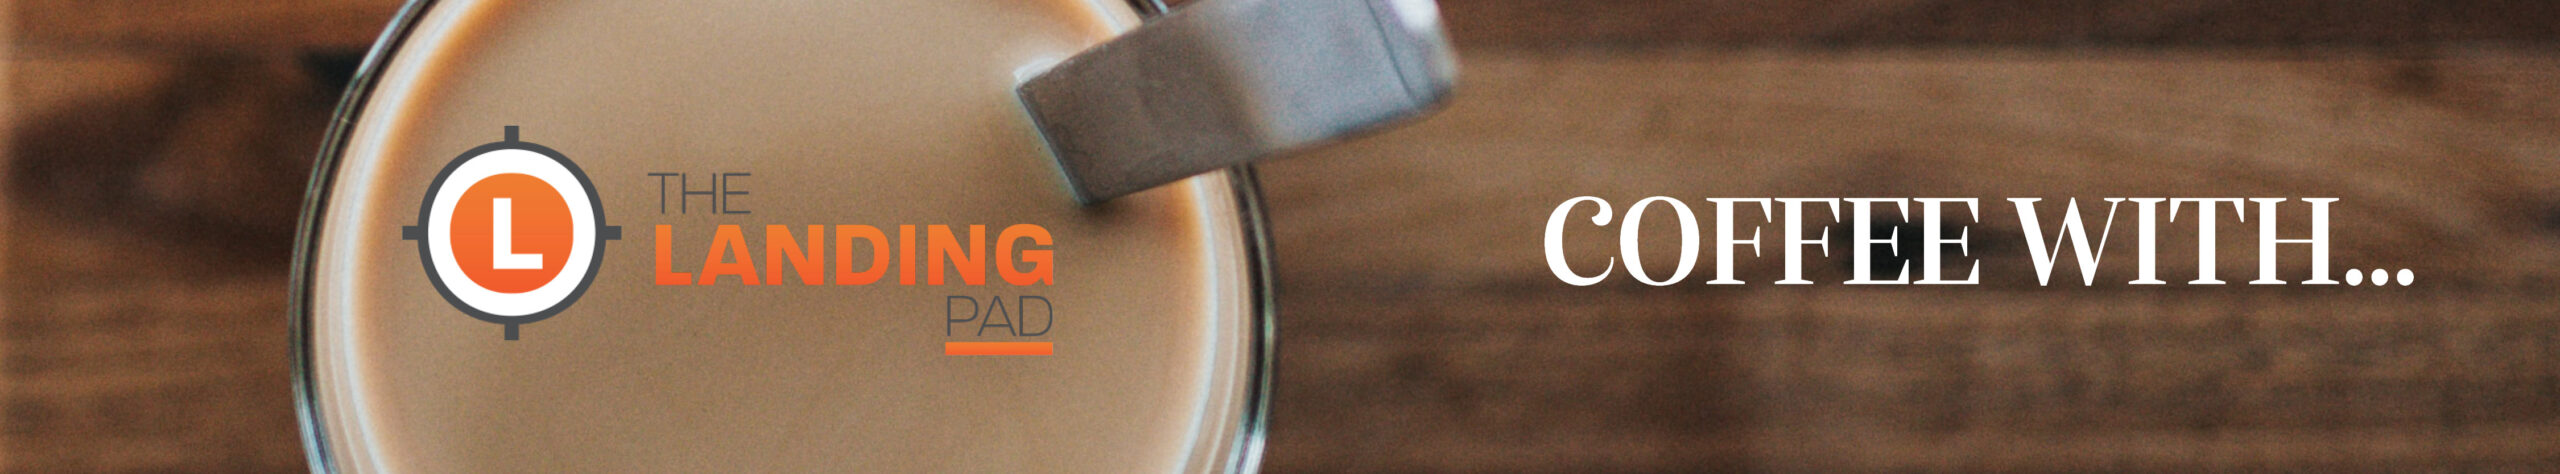 The Landing Pad Presents: Coffee With...